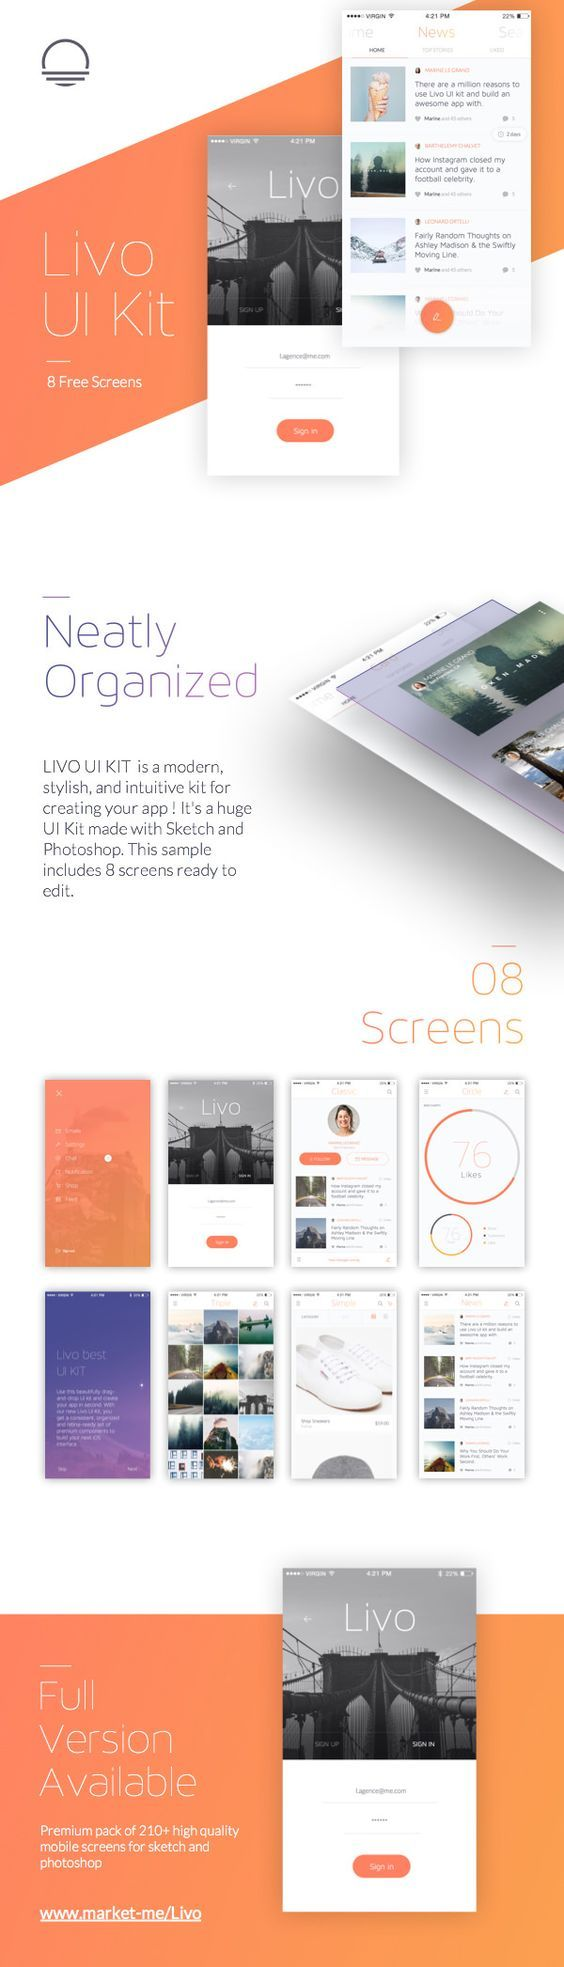 Have a nice week with a neatly organized FREE UI Kit – Livo. The Kit contains 8 screens from across different categories and is compatible with both Photoshop and Sketch. With polished design, It will help you to build your next mobile app successfully.: